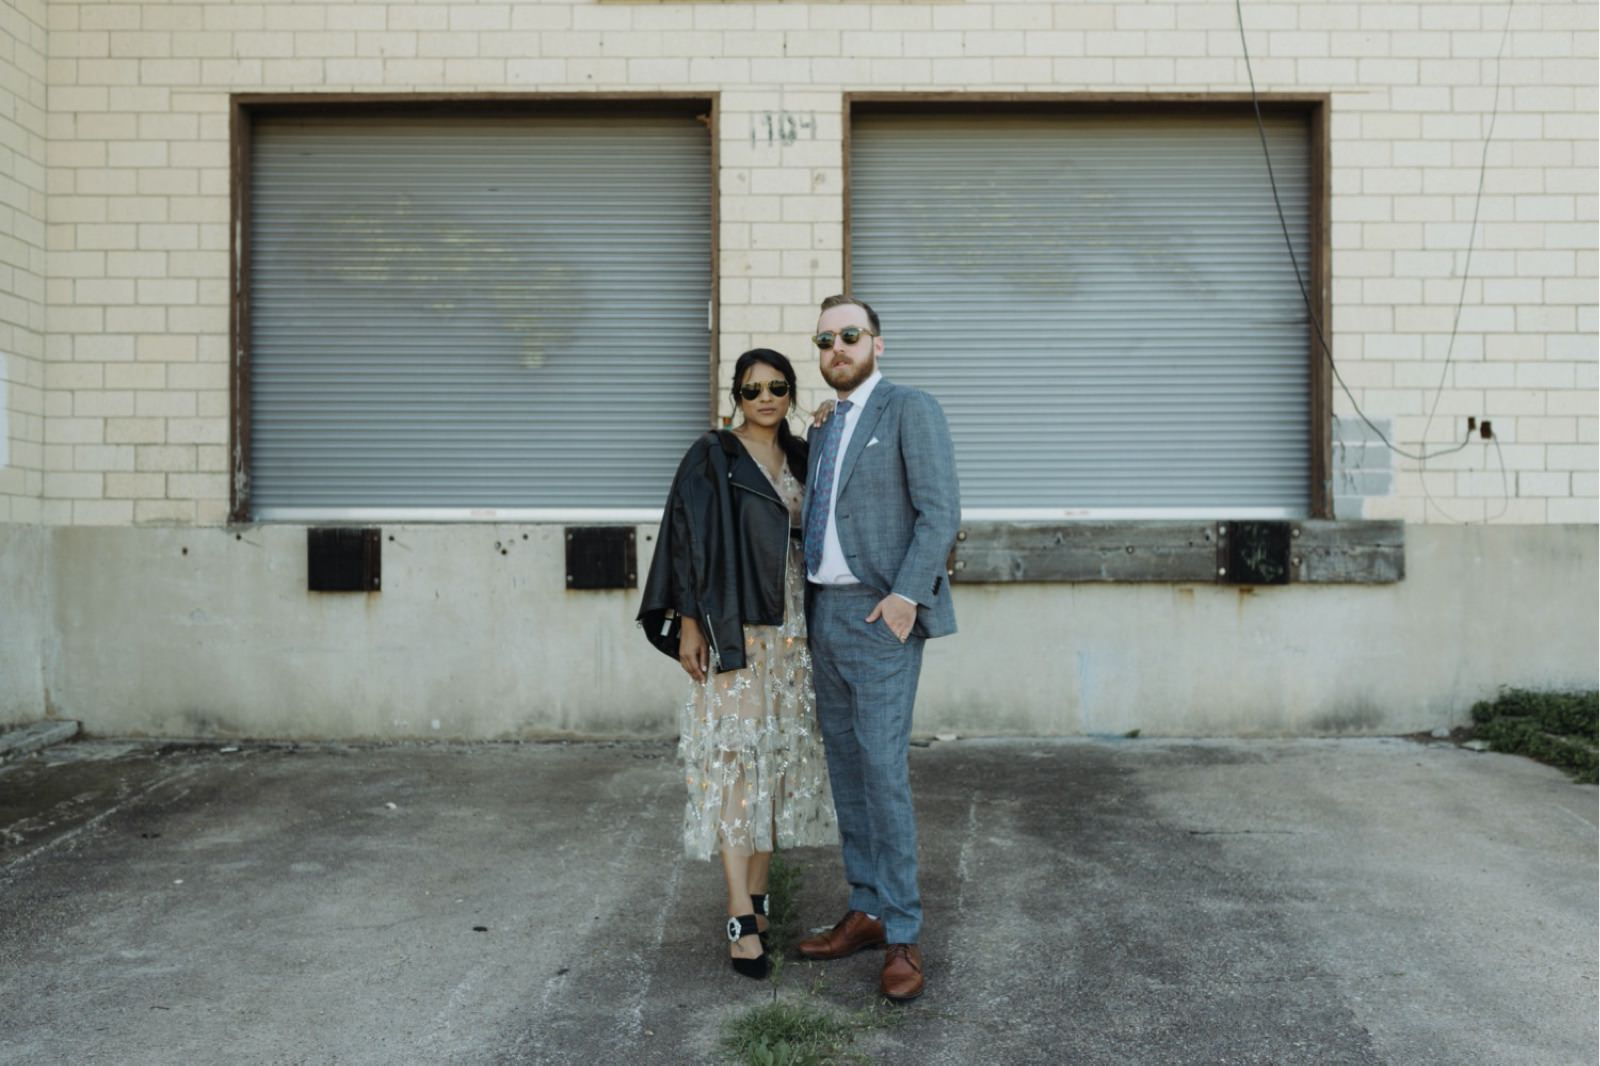 Stylish wedding couple wearing Self-Portrait dress and patterned suit posing in an industrial area of Austin